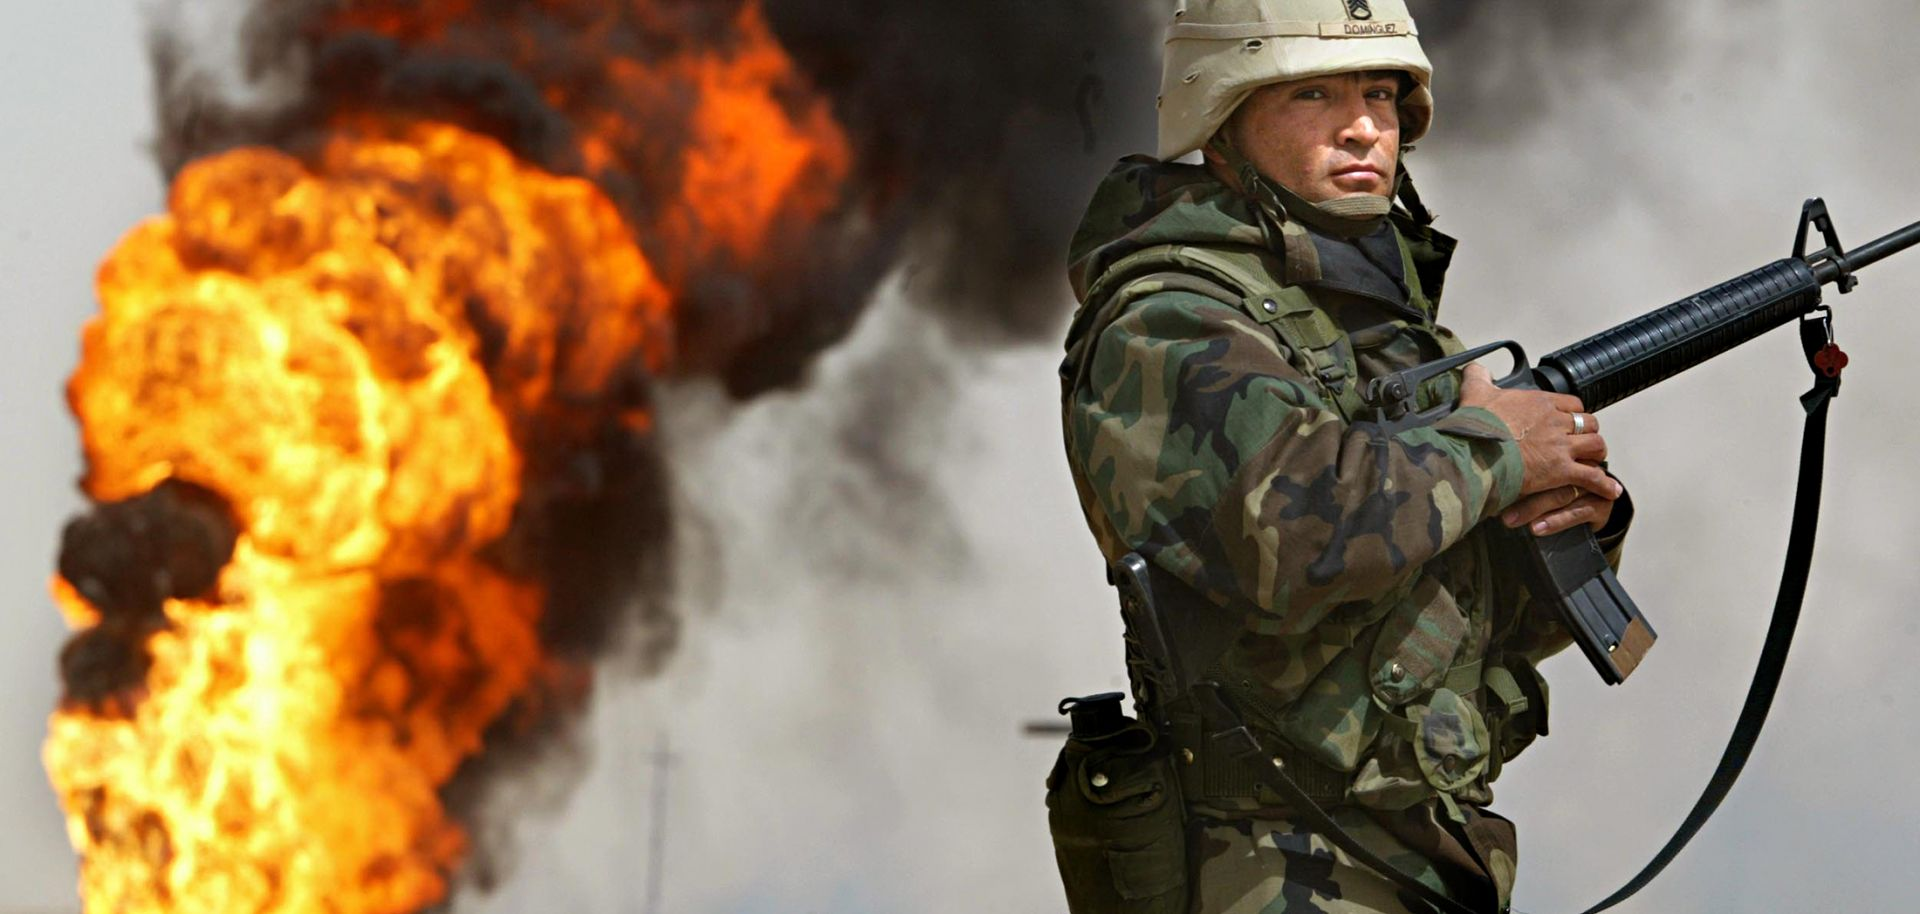 U.S. Army Staff Sgt. Robert Dominguez stands guard next to a burning oil well in the oil fields of Rumaila, Iraq, on March 27, 2003.